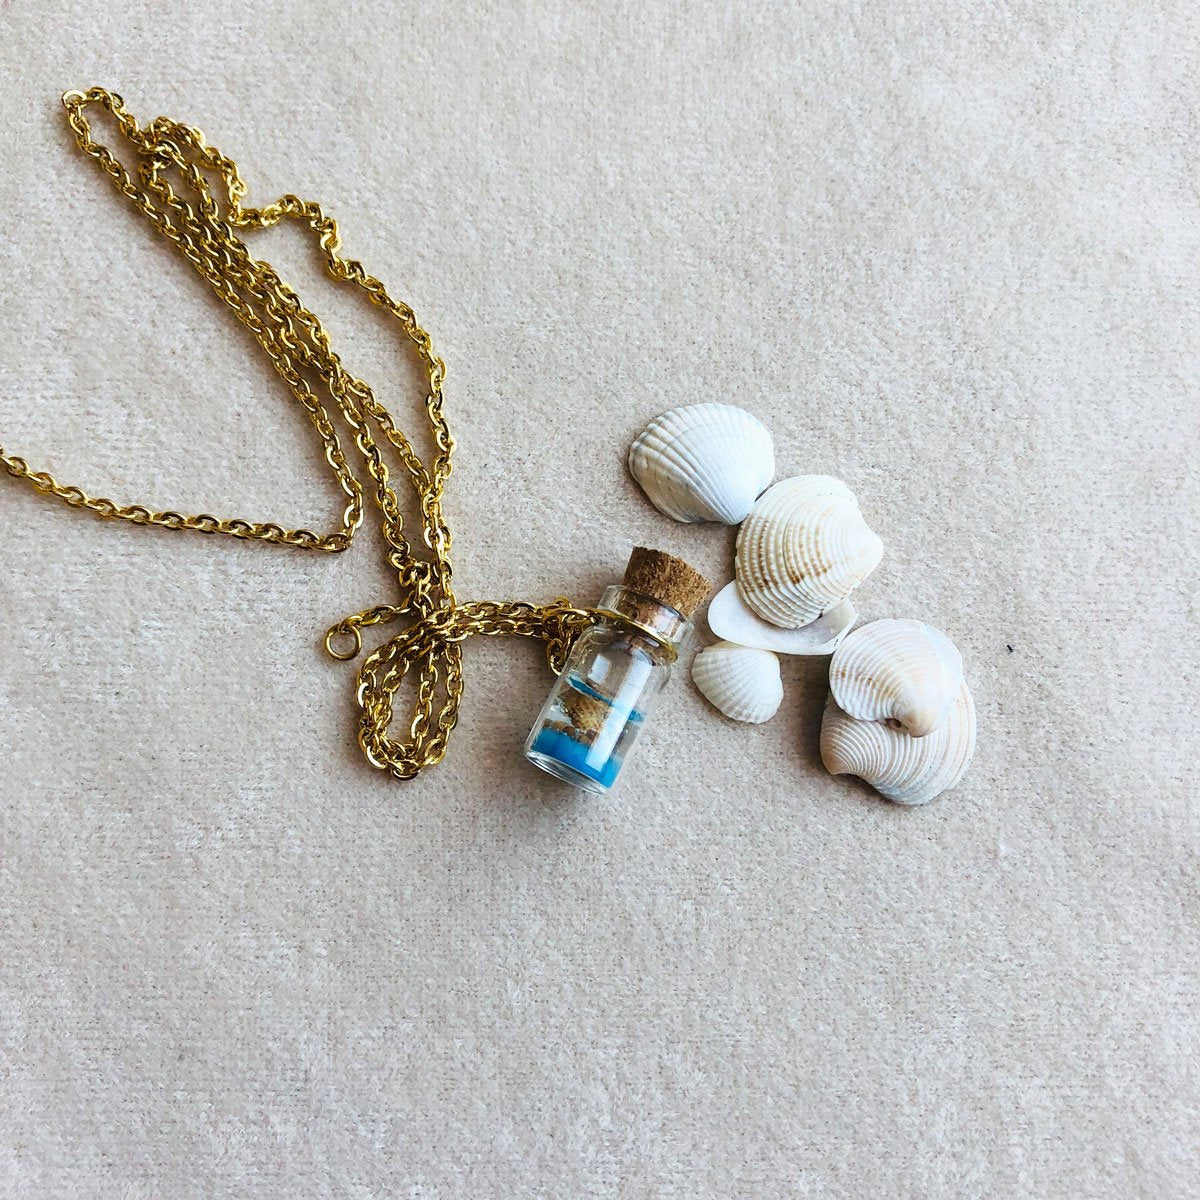 Summer | Sea shells in a tiny glass bottle